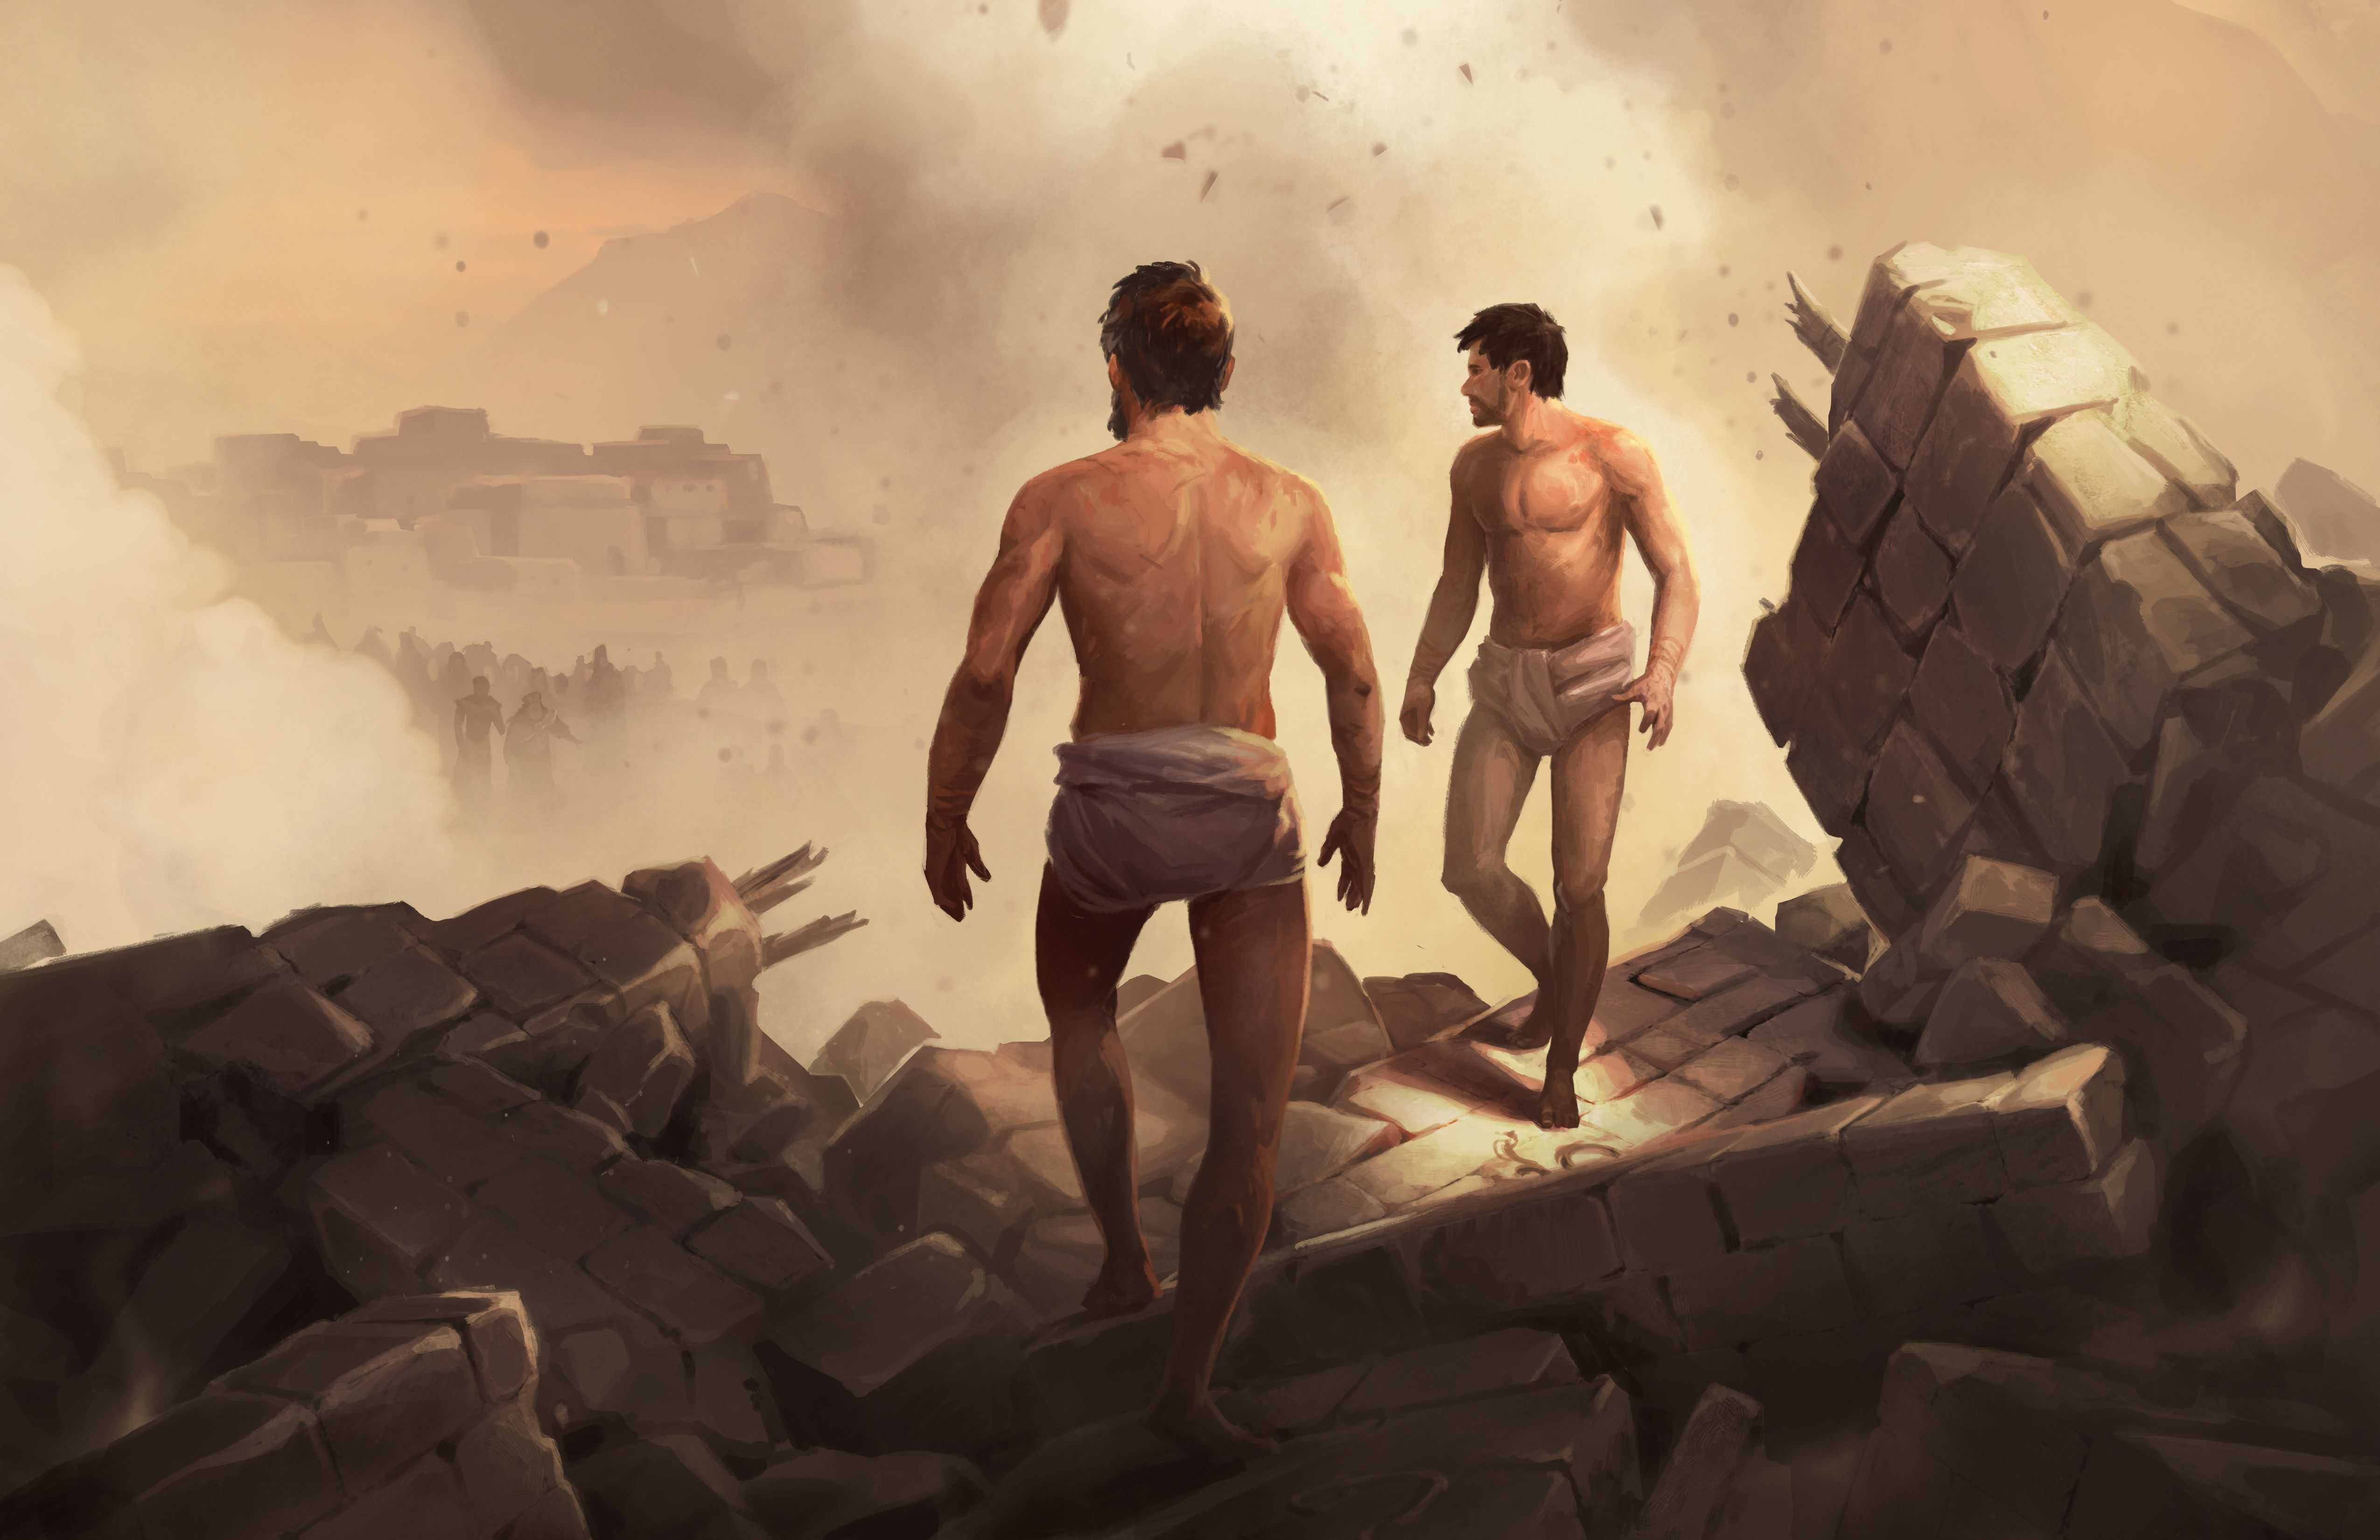 Alma and Amulek walking out of the prison rubble. Created by Andrew Bosley.